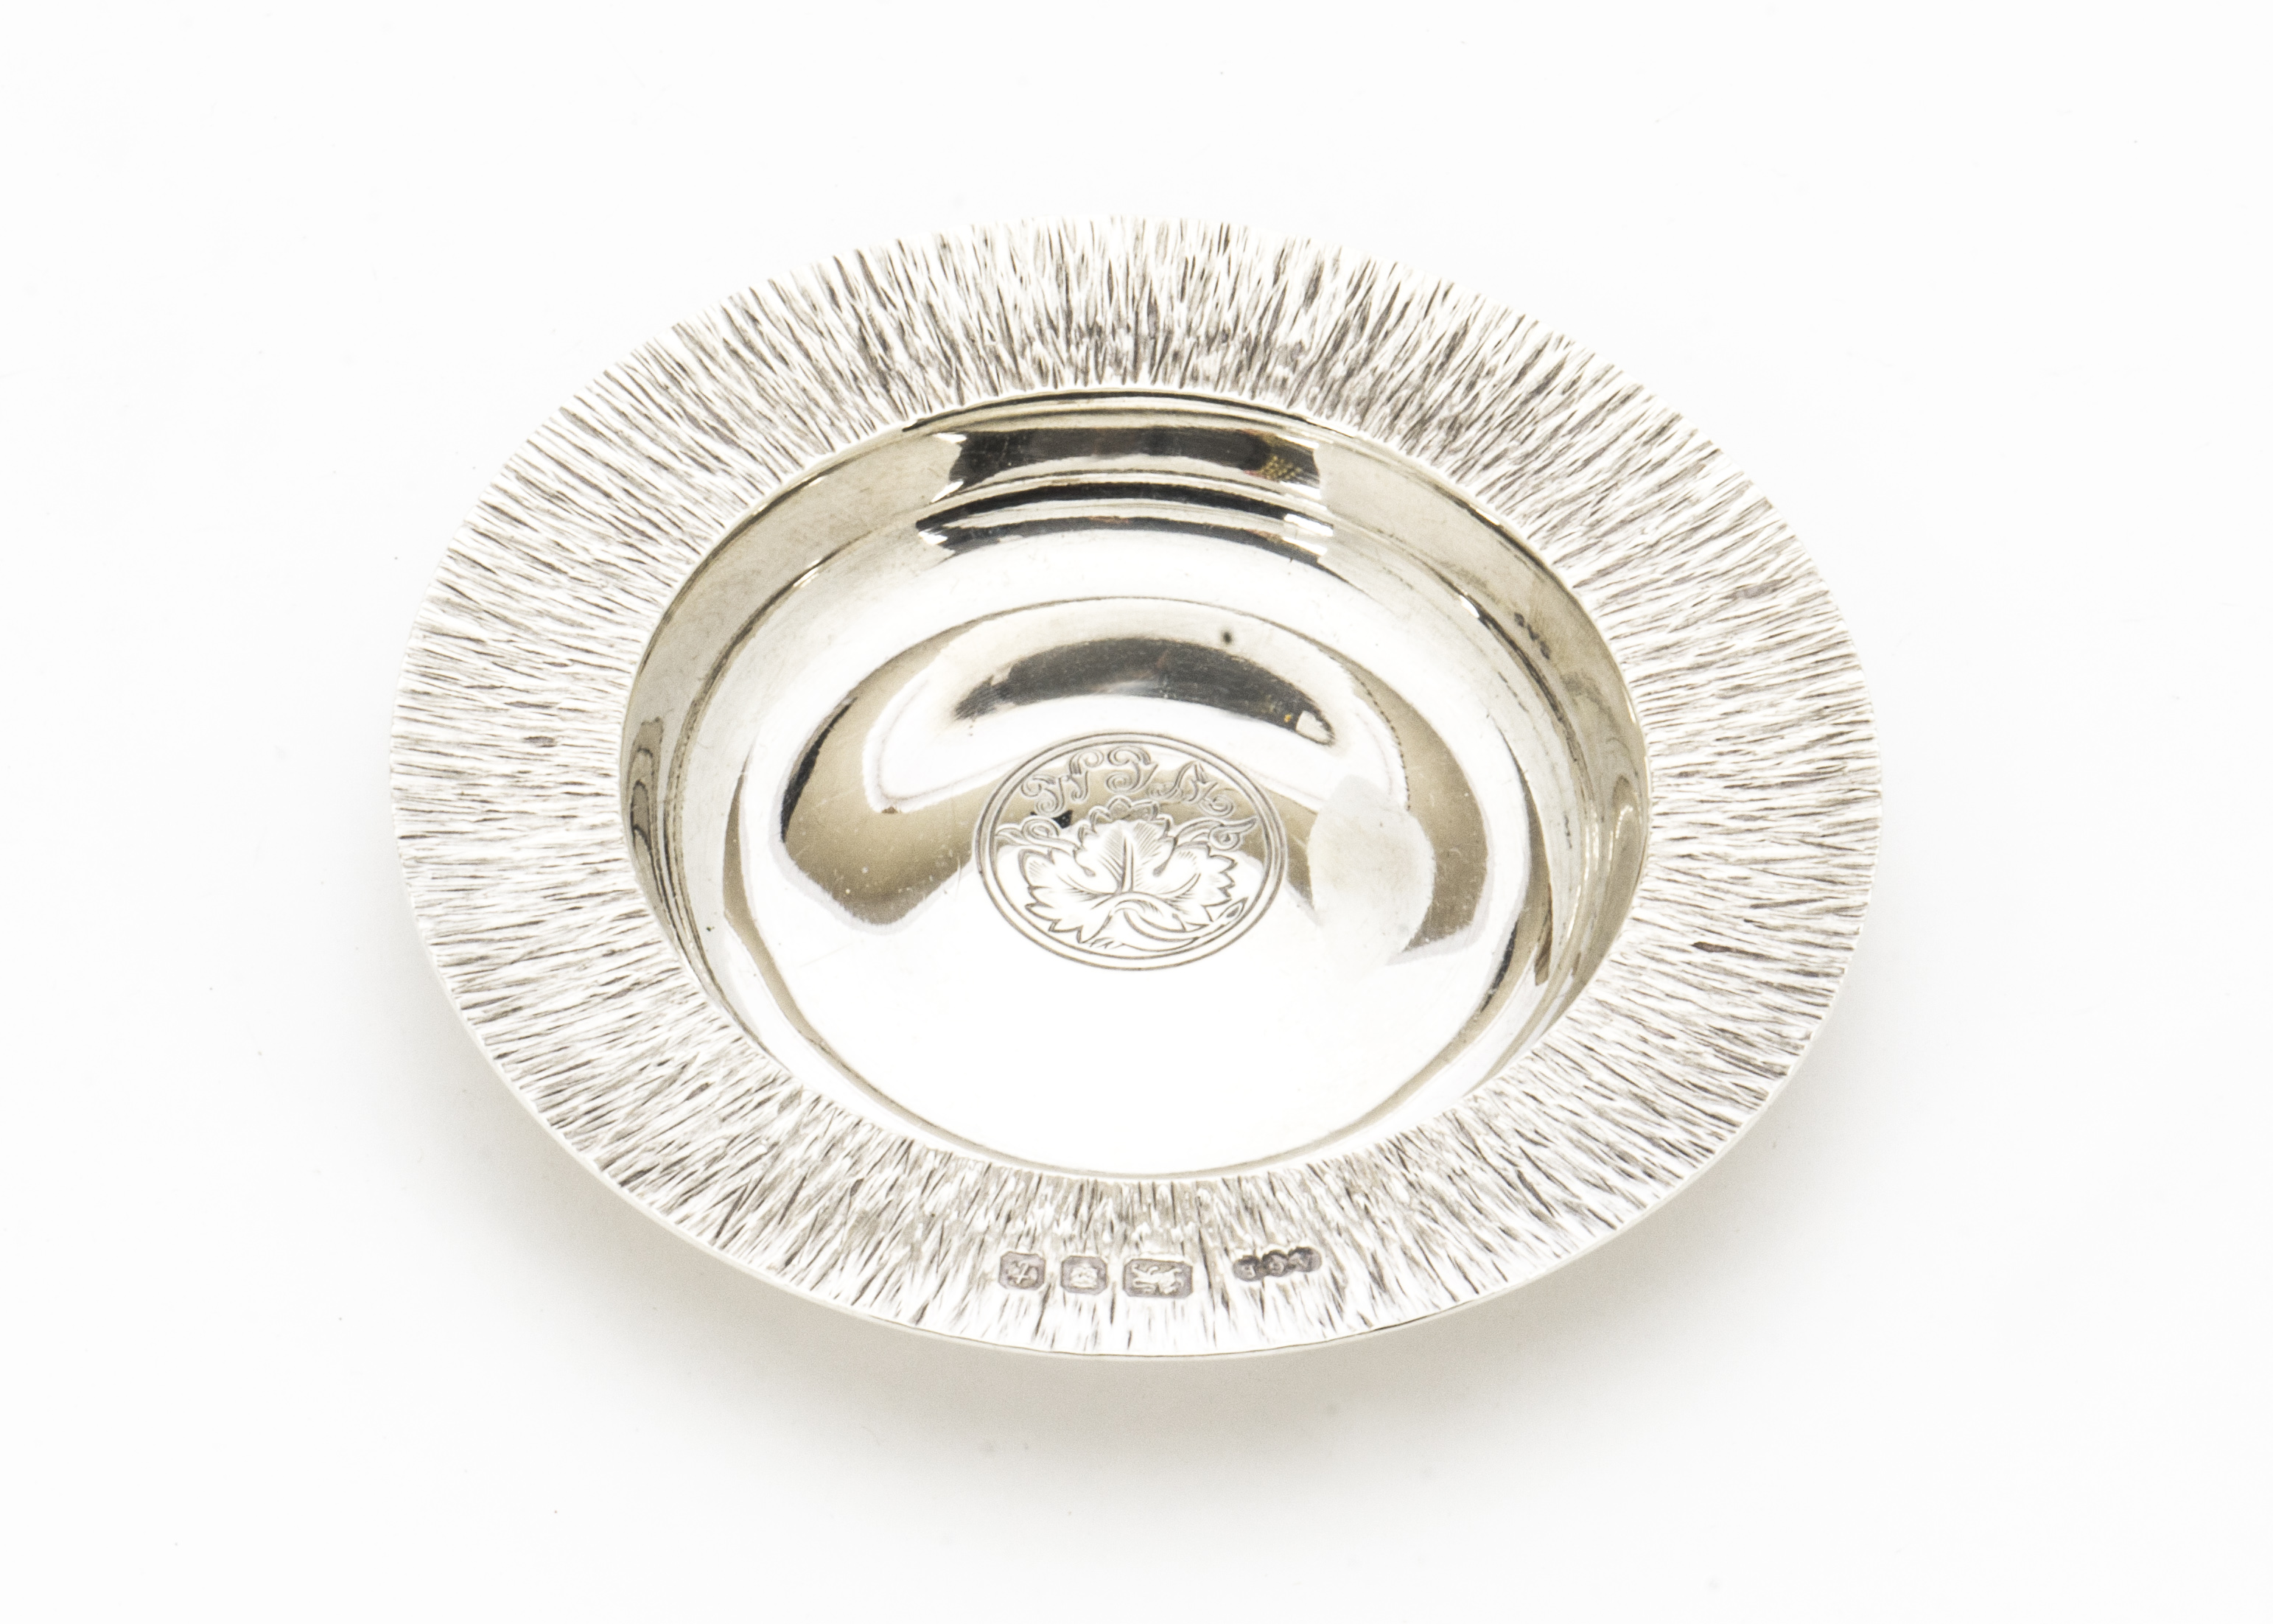 Lot 59 - A 1970s silver dish by Gerald Benney, circular having bark effect textured rim and engraved grape